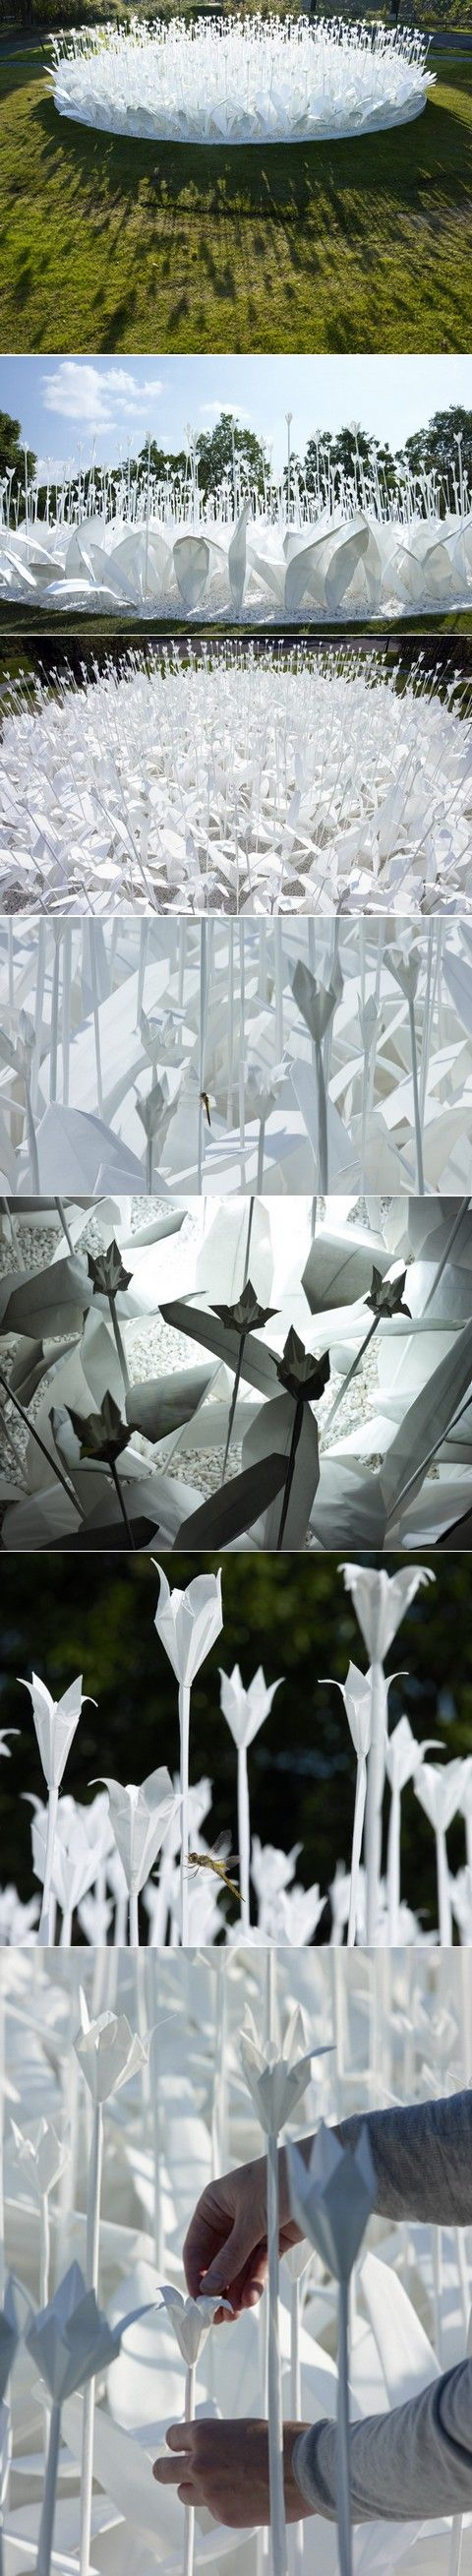 """Fold For Peace"" in Japan by swiss designer, Anouk Vogel. According to ancient Japanese legend, anyone who folds a thousand origami cranes is granted a wish by a crane. Anouk Vogel uses a lack of color to catch the eye and to represent peace."